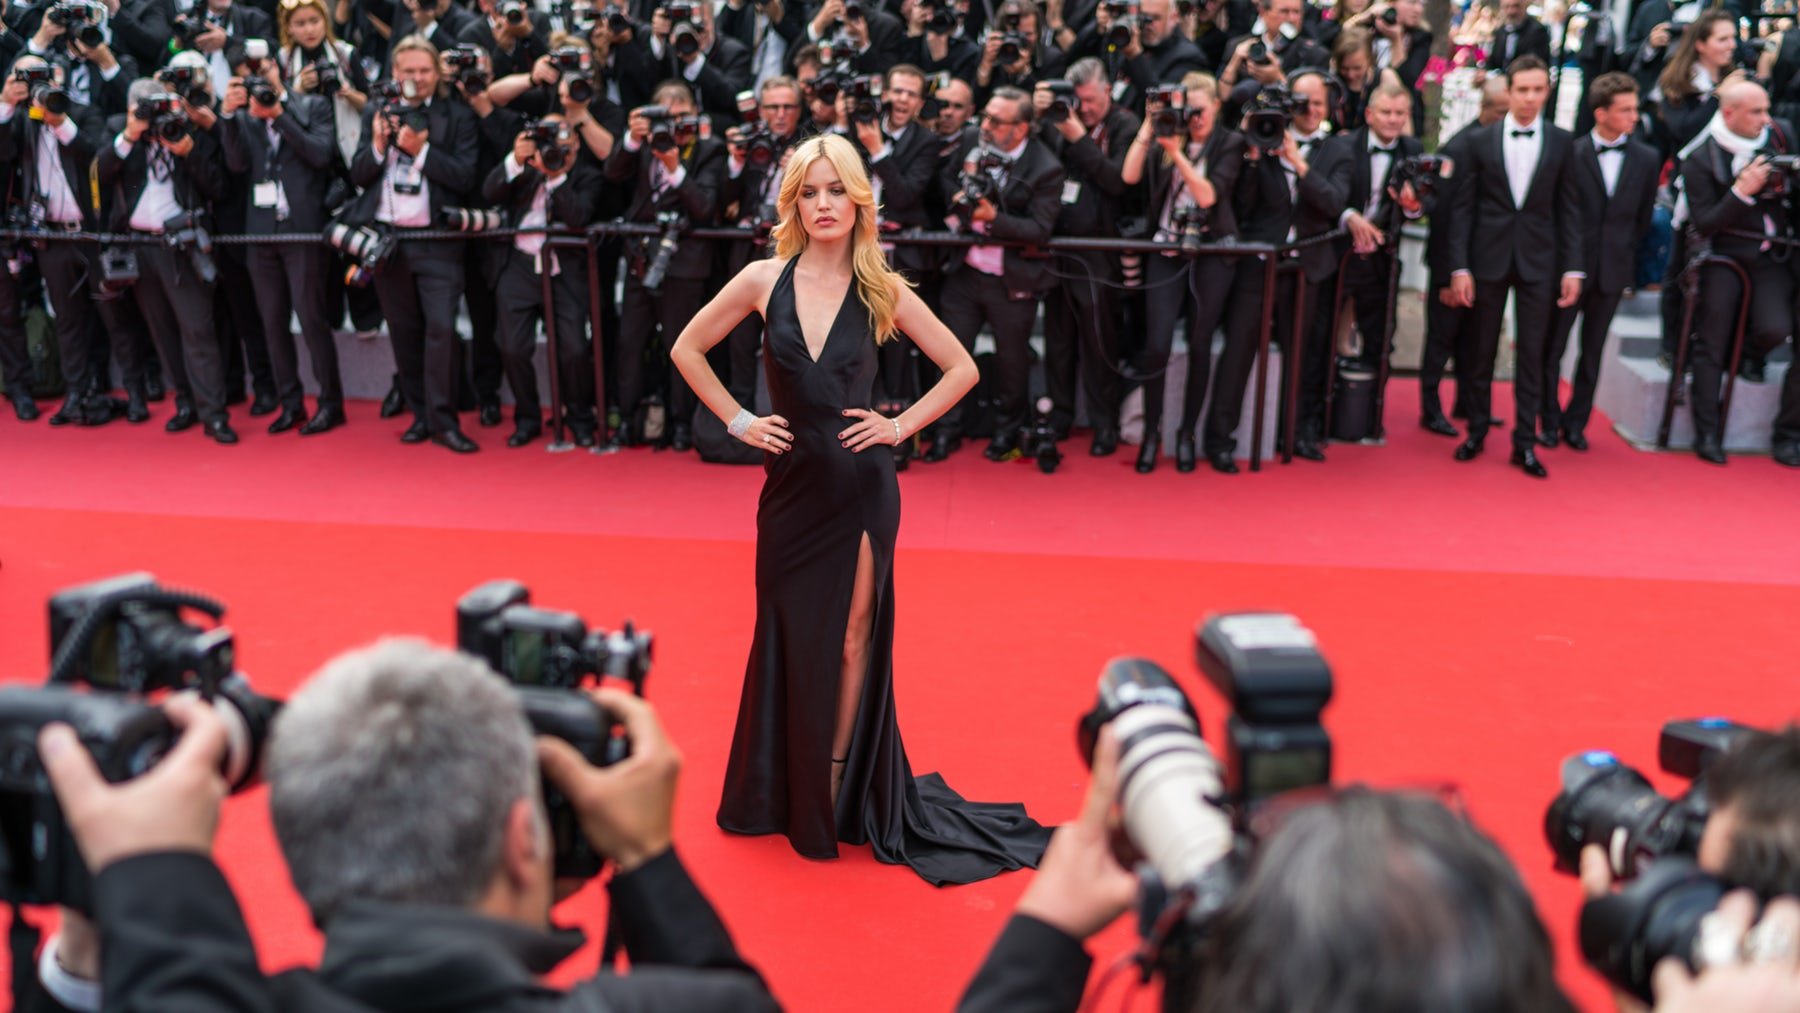 Georgia May Jagger at the 71st annual Cannes Film Festival | Source: Shutterstock